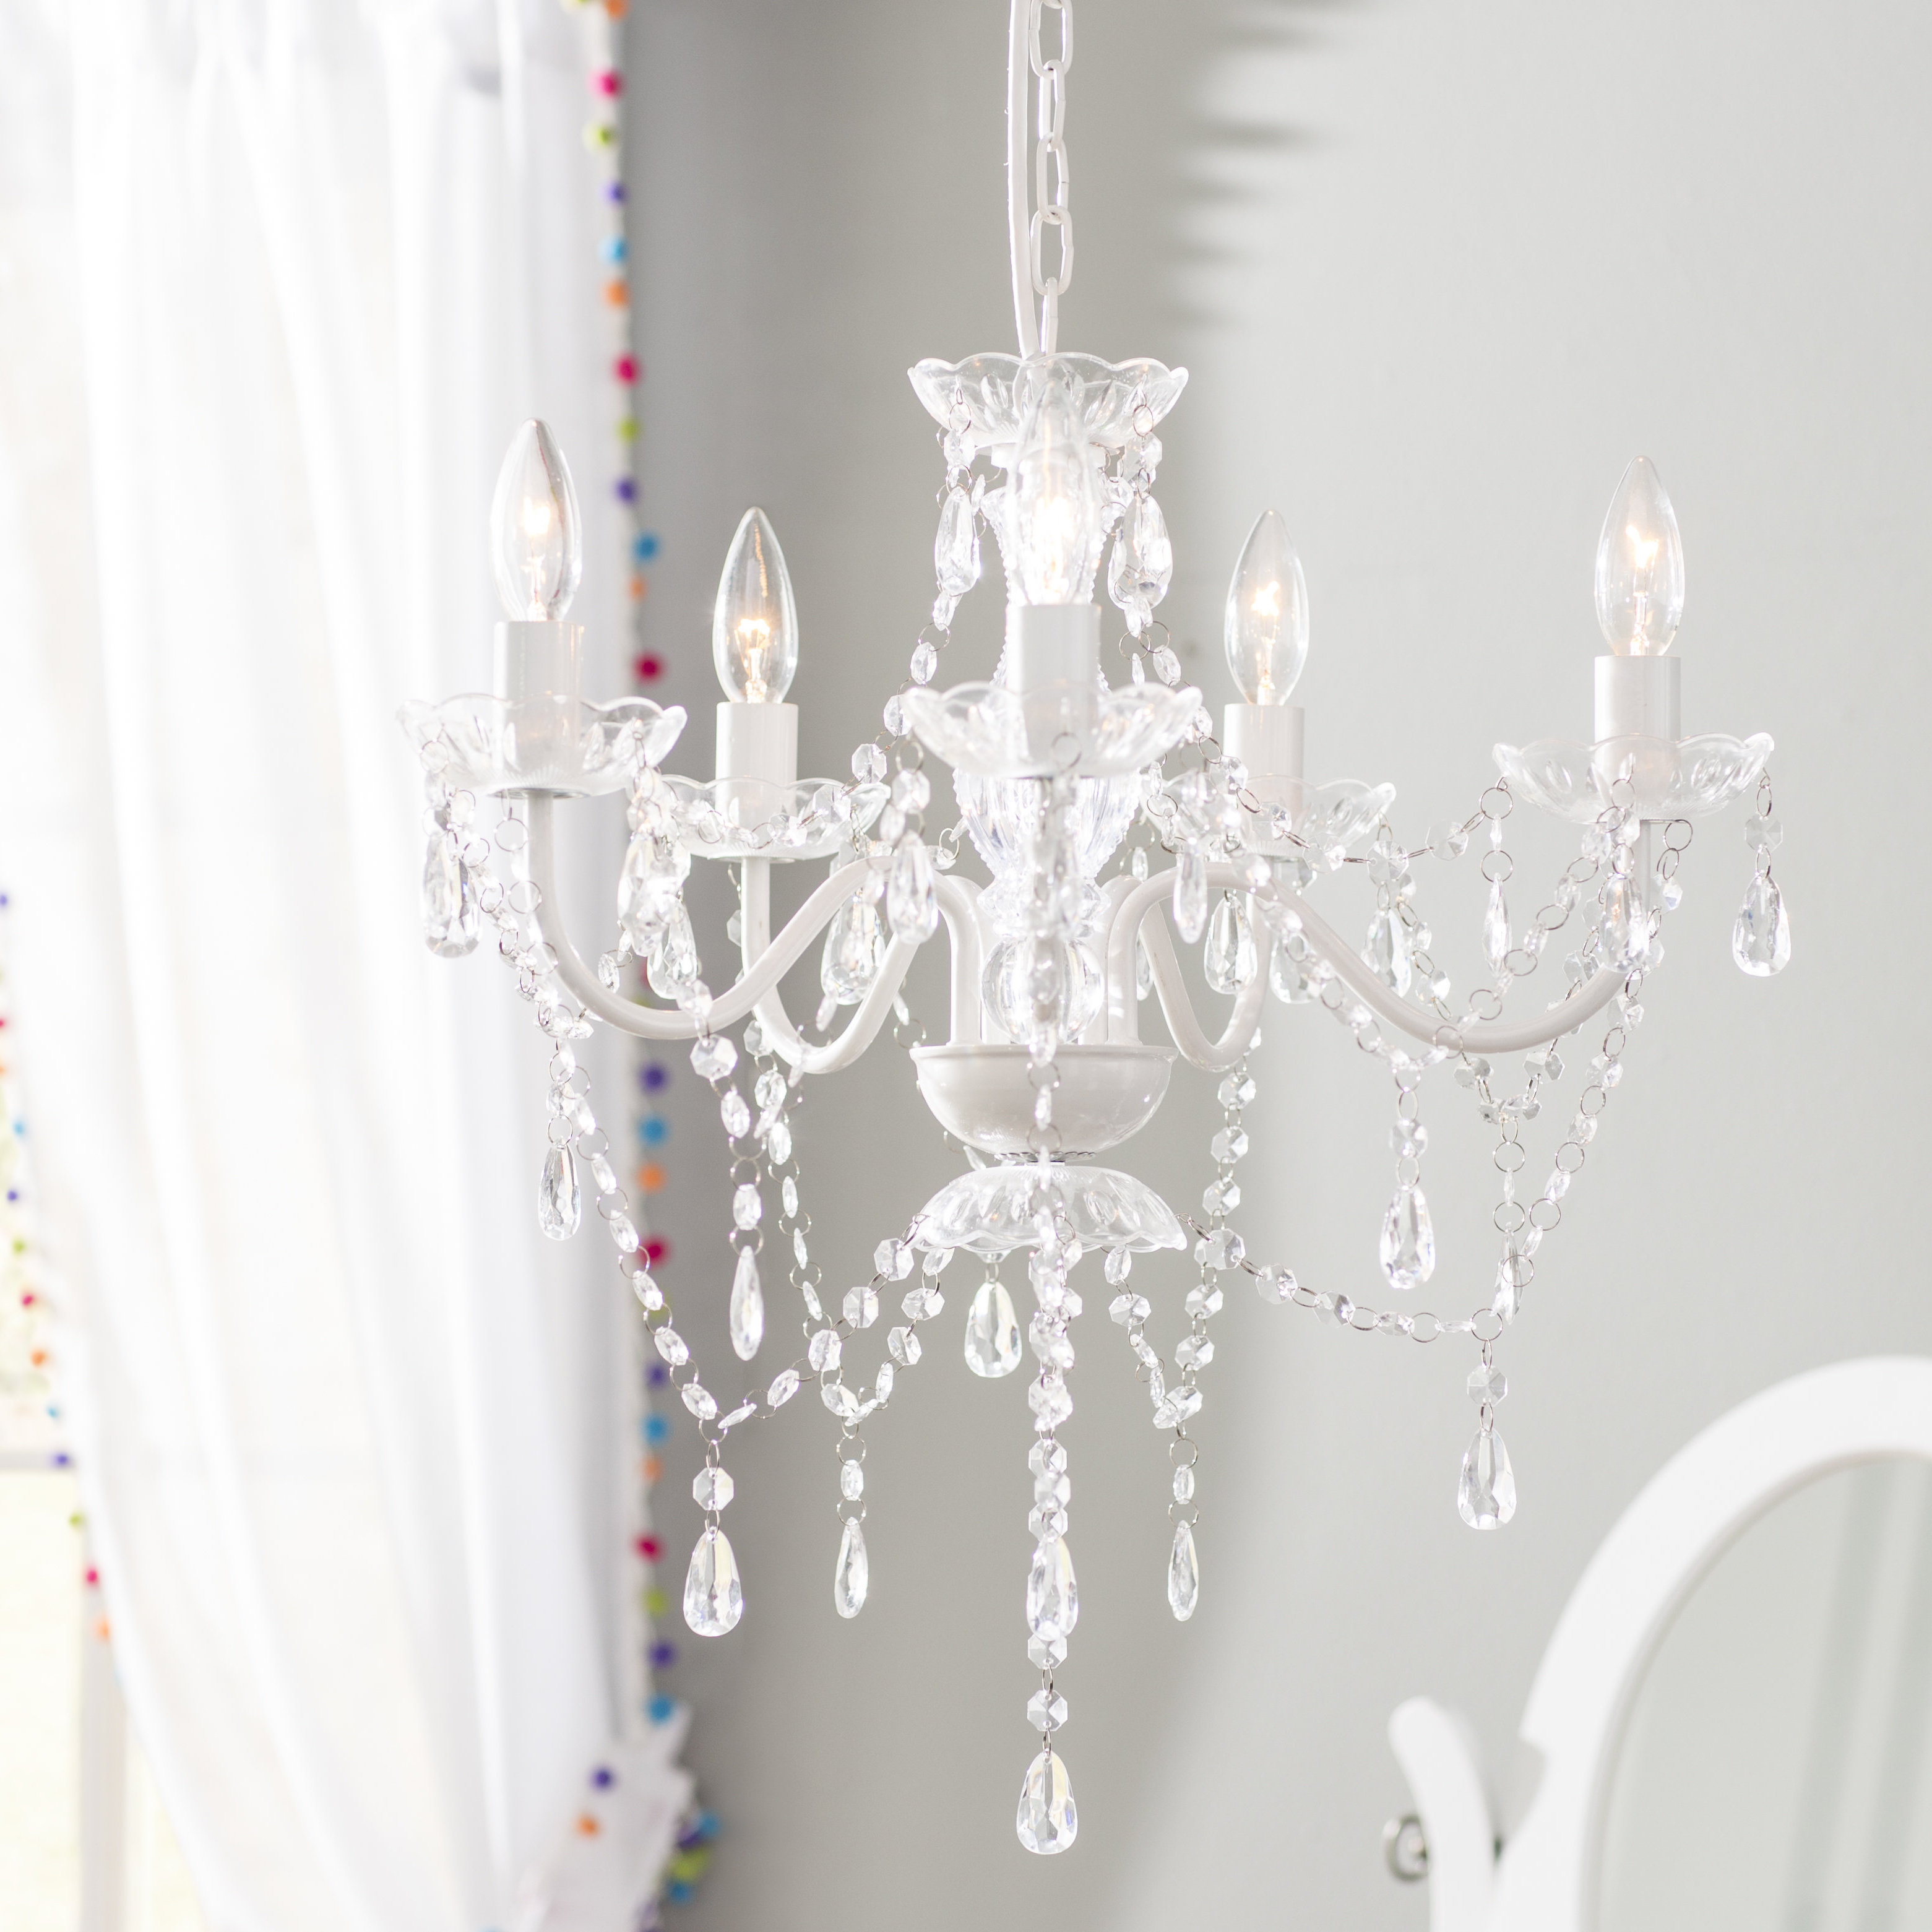 Famous Blanchette 5 Light Candle Style Chandeliers Inside Senoia 5 Light Candle Style Chandelier (View 10 of 20)